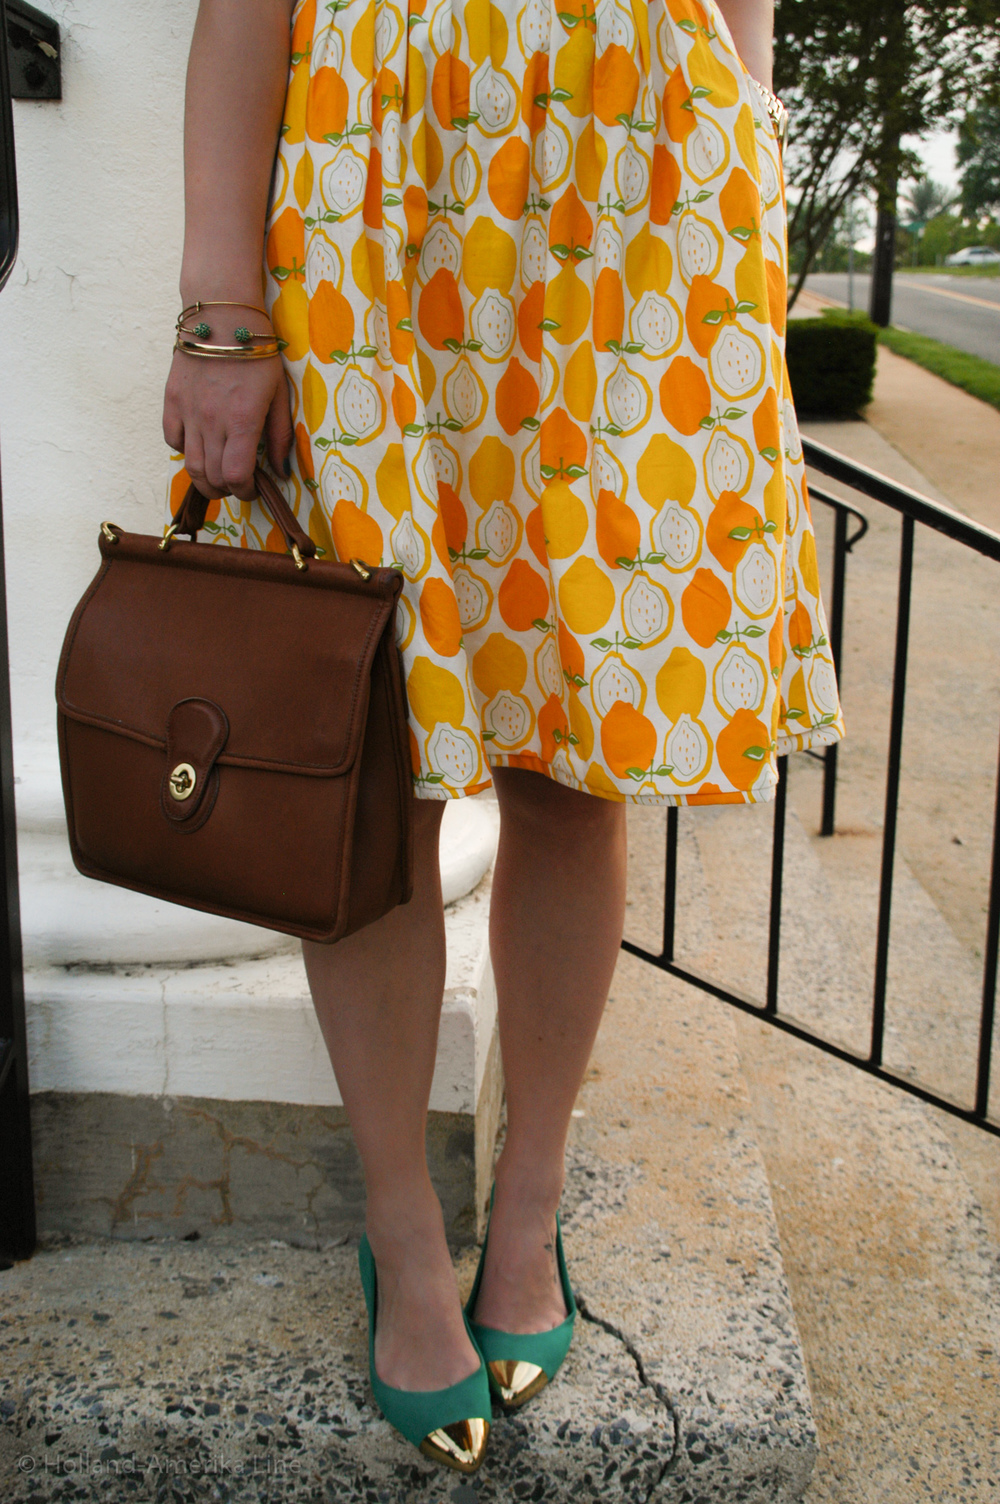 Dress: Handmade (fabric from Joann Fabrics) | Shoes: ShoeDazzle | Bag: Coach | Earrings: Target | Necklace:  a-thread